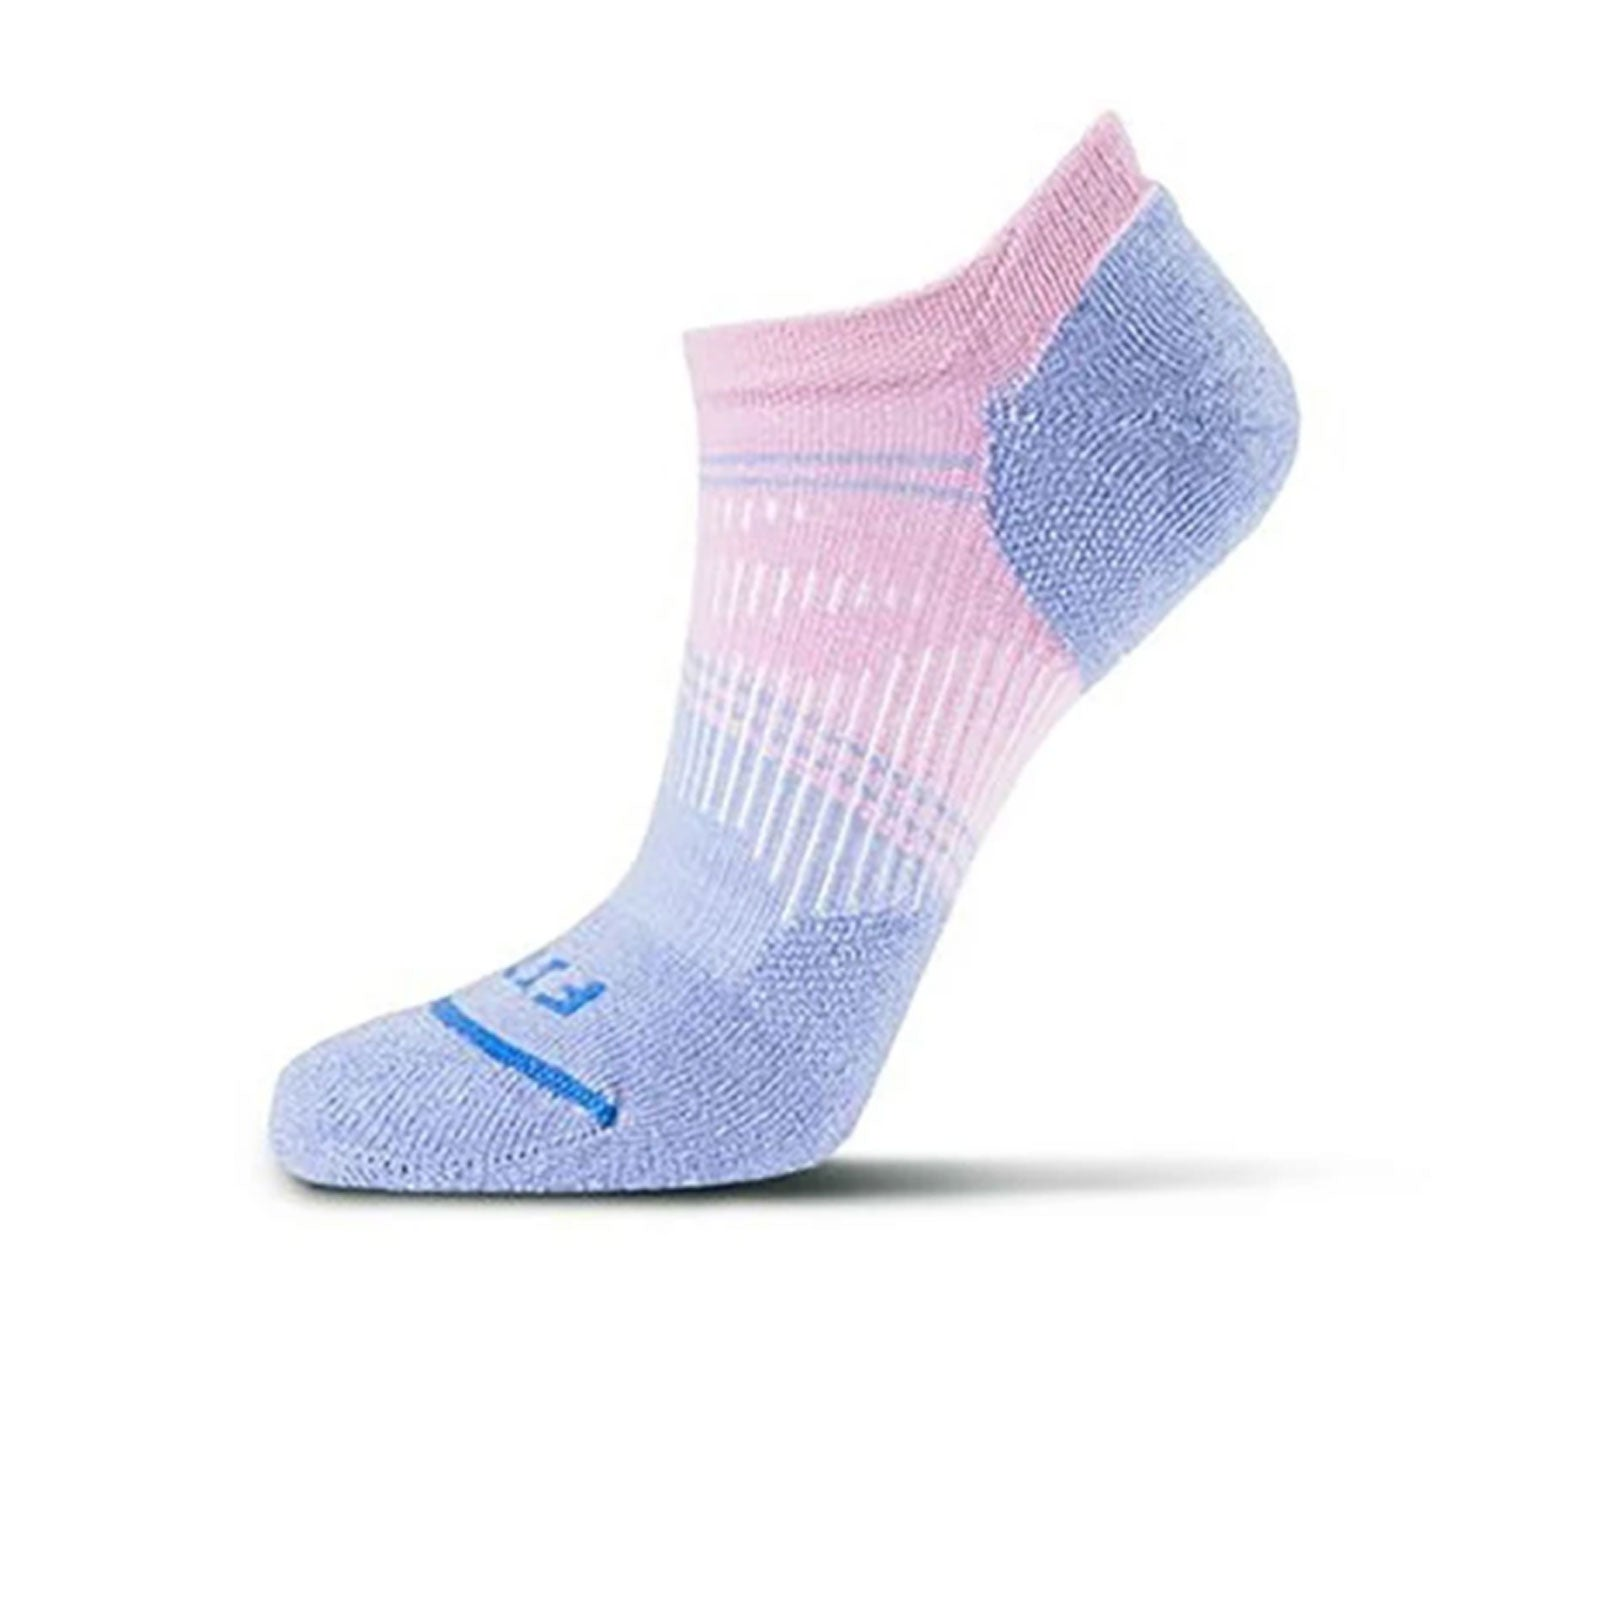 Fits Light Runner No Show (Women) - Lavender Herb Socks - Life - No Show - The Heel Shoe Fitters